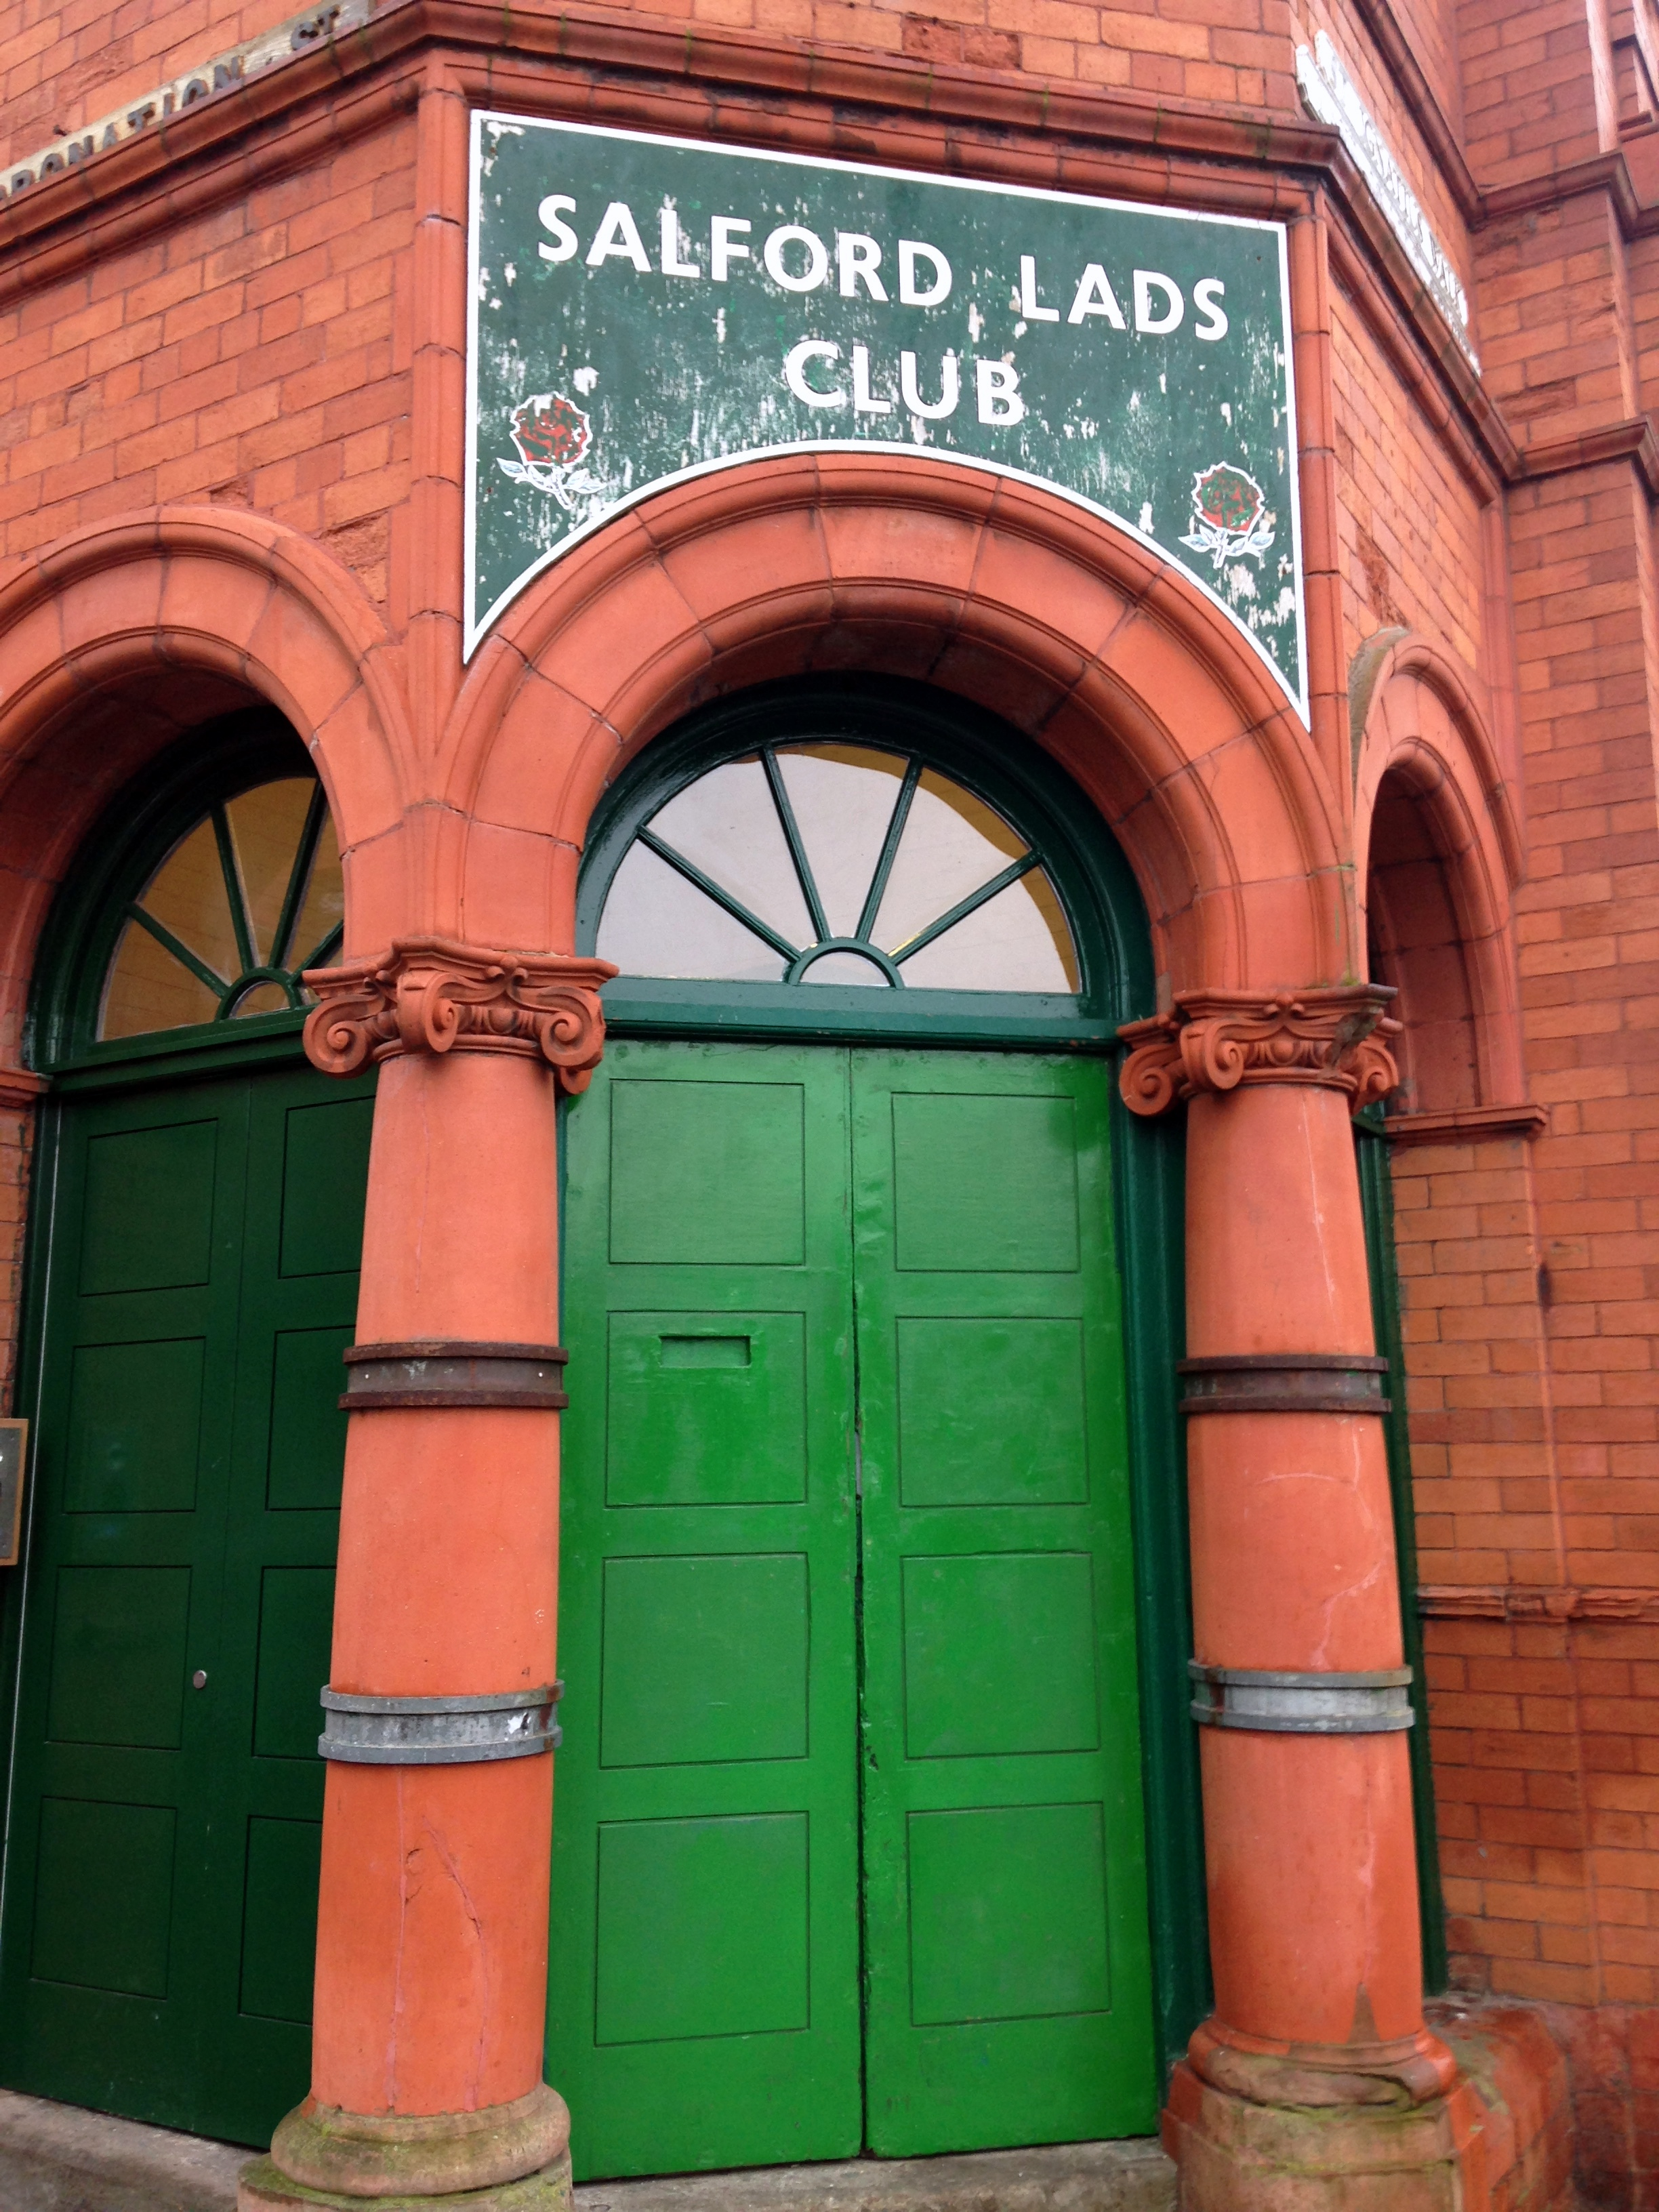 The Salford Lads Club, made world famous by The Smiths' album The Queen is Dead